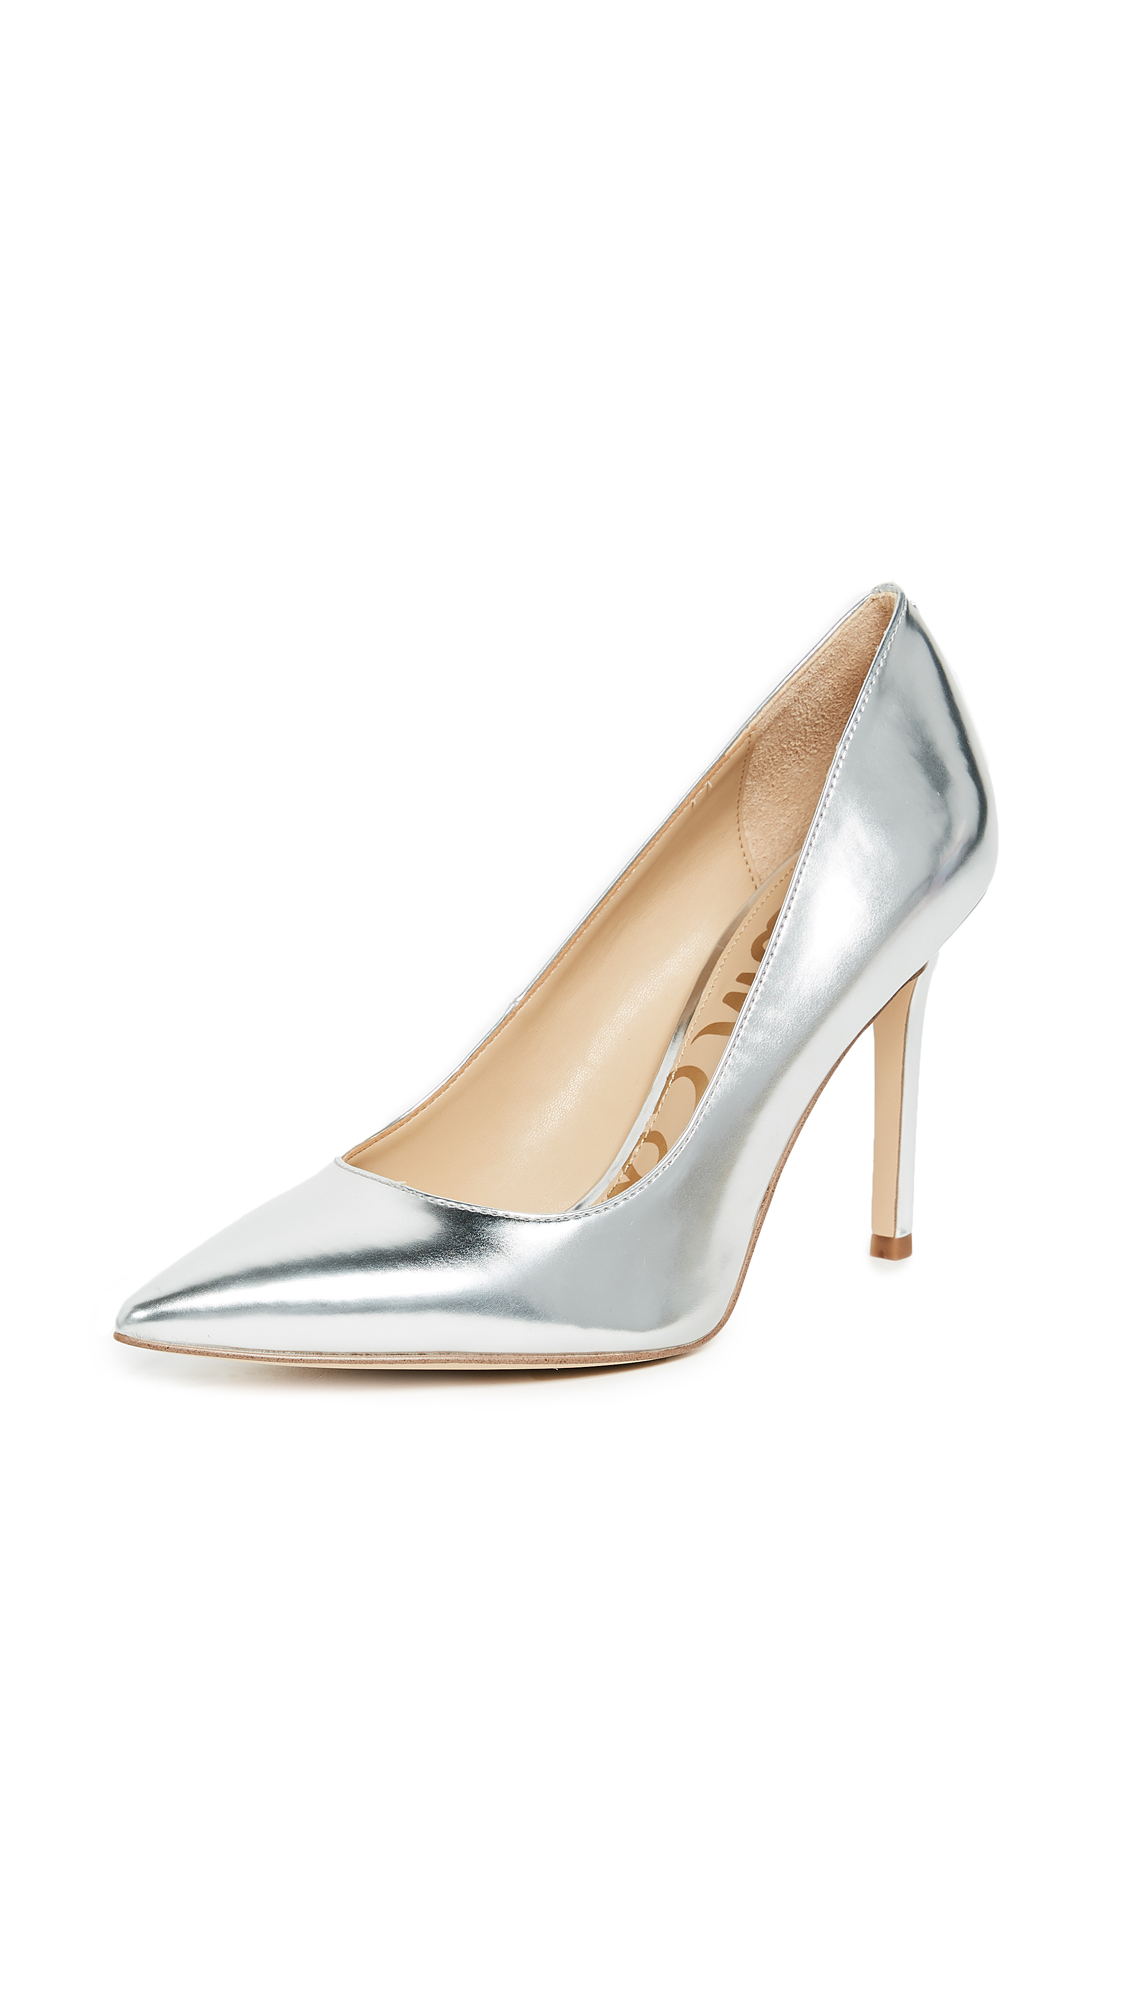 Sam Edelman Hazel Pumps - Soft Silver